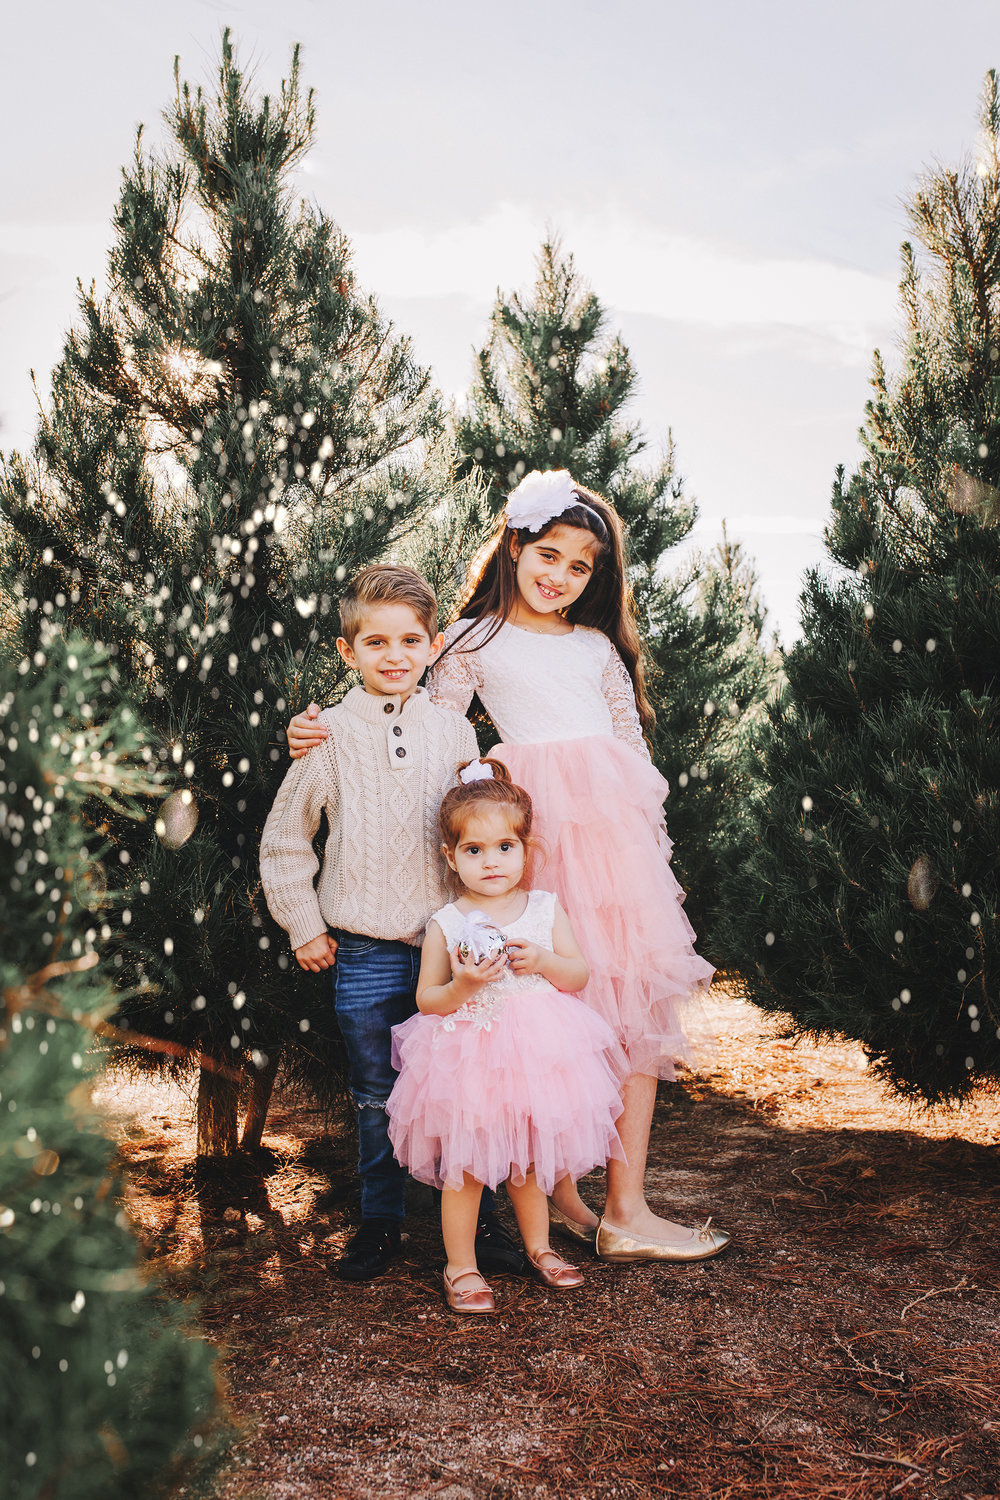 A sibling portrait with Big Sister, Big Brother, and Little Sister- A Christmas tree farm portrait by Nature's Reward Photography